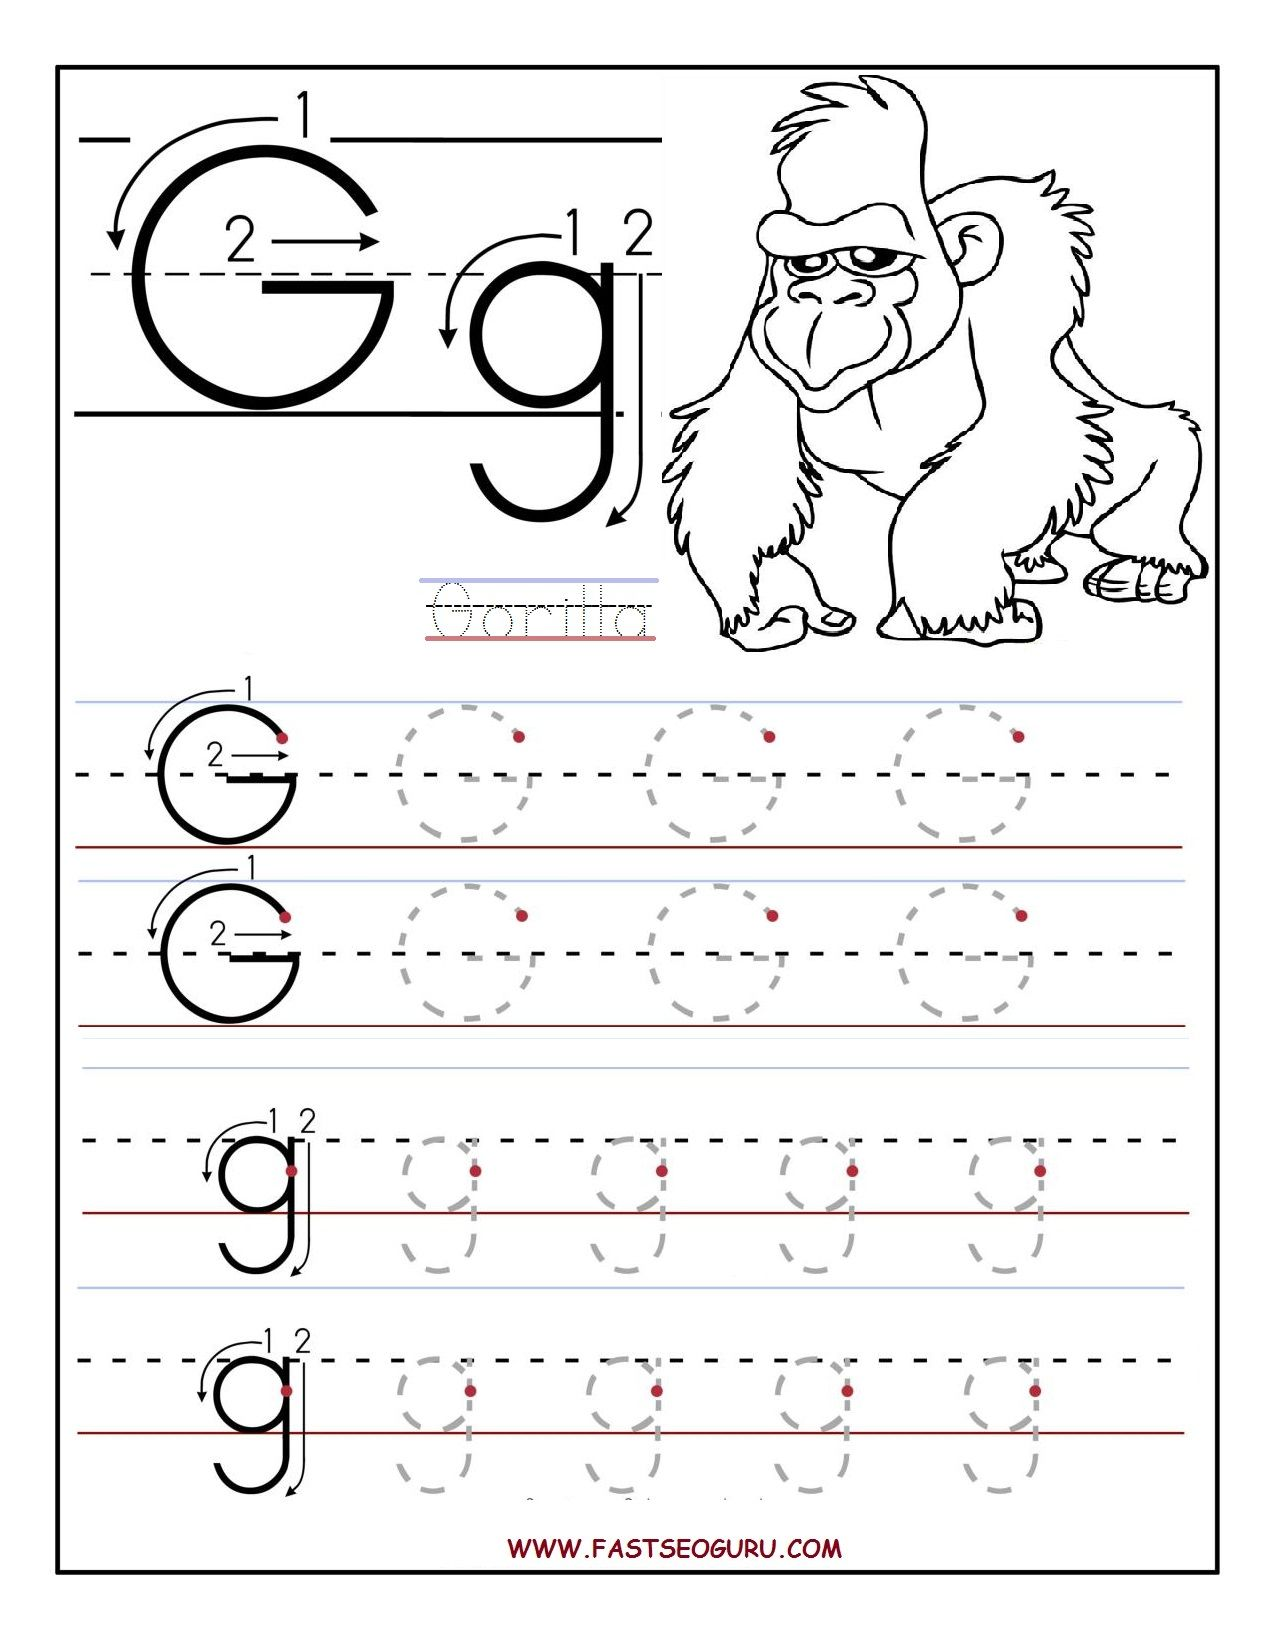 Worksheet Printable Letters For Preschool 17 best images about sporingsoppgaver til bokstaver on pinterest preschool alphabet printable letters and preschool